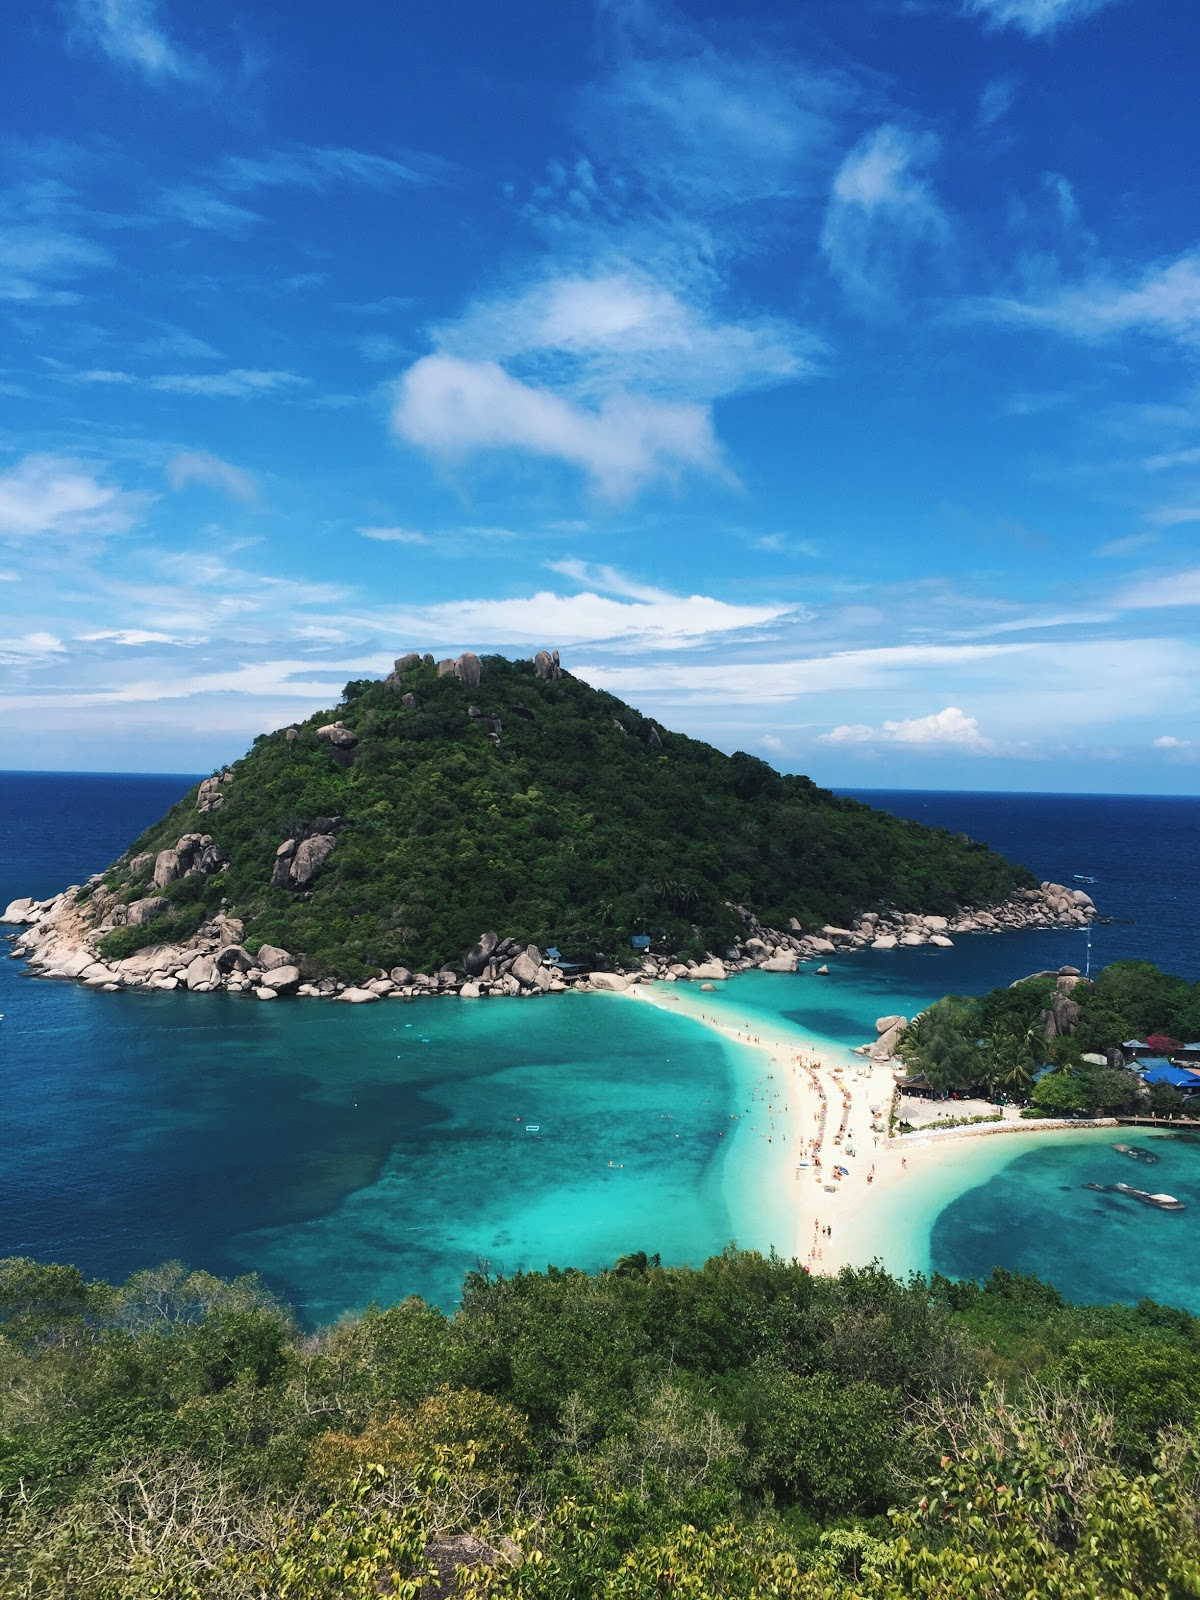 Koh Tao, Thailand Travel Guide - Petite Side Of Style-2326